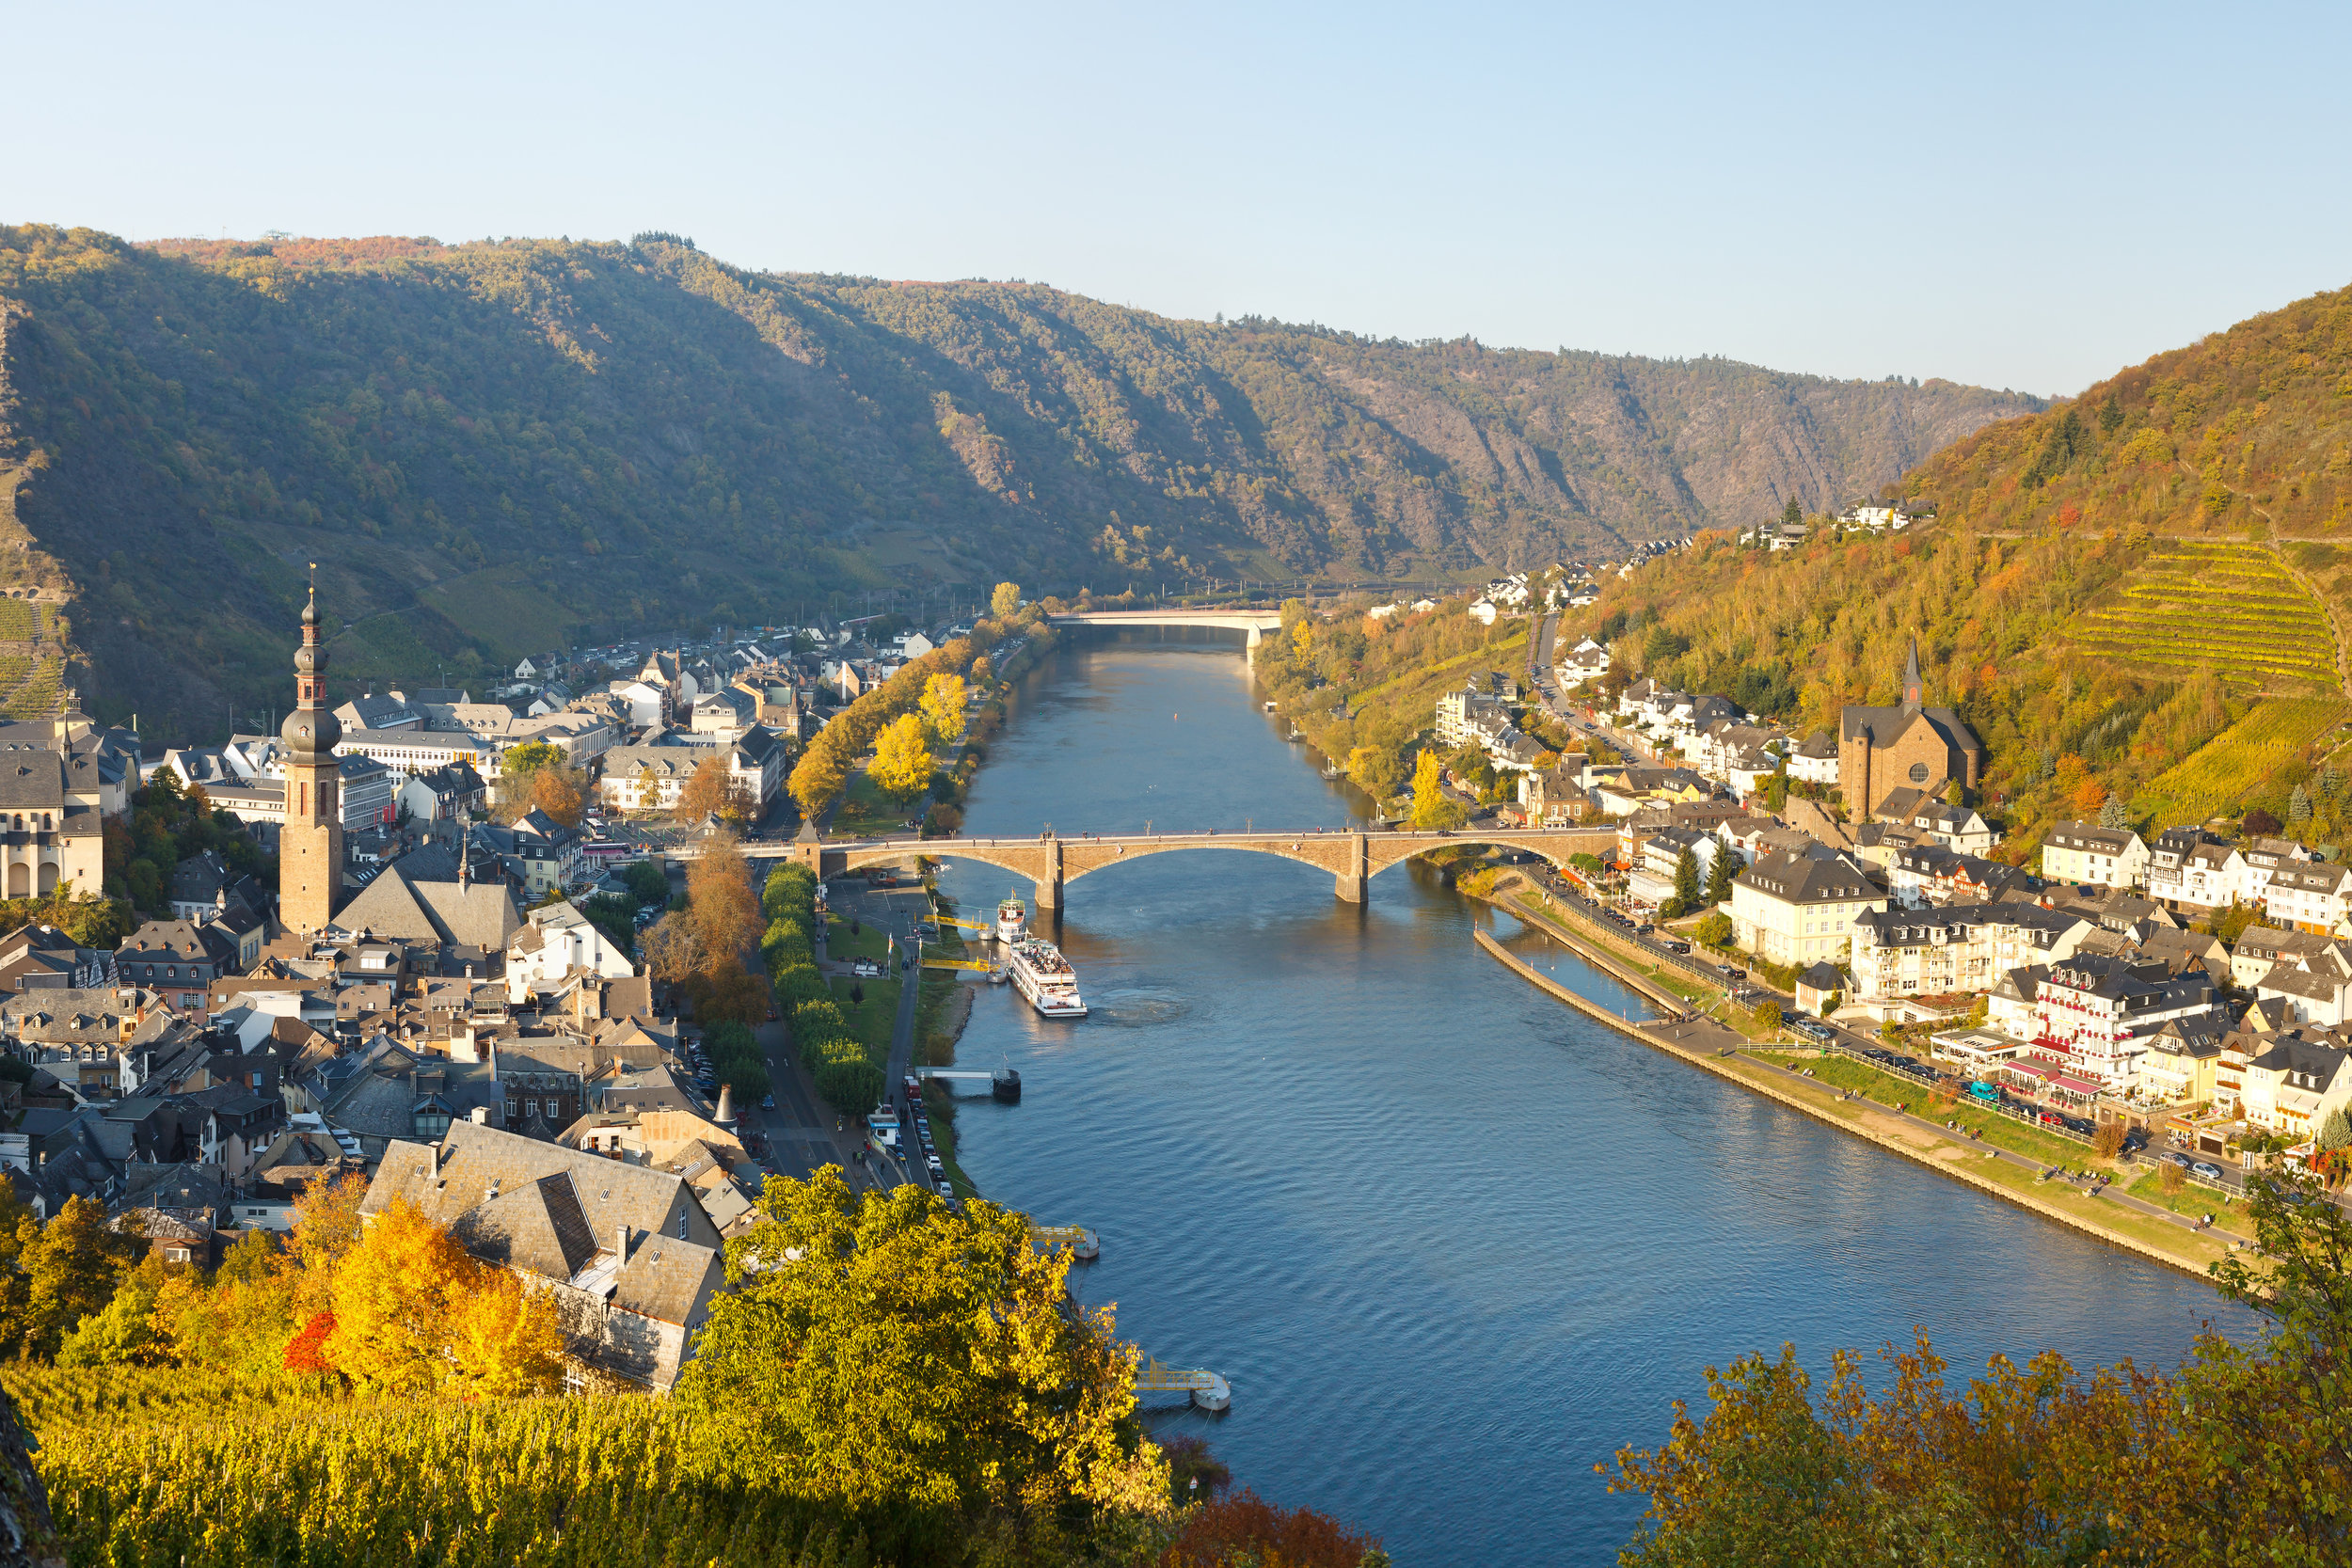 4Cochem-Mosel-Germany-copy.jpg